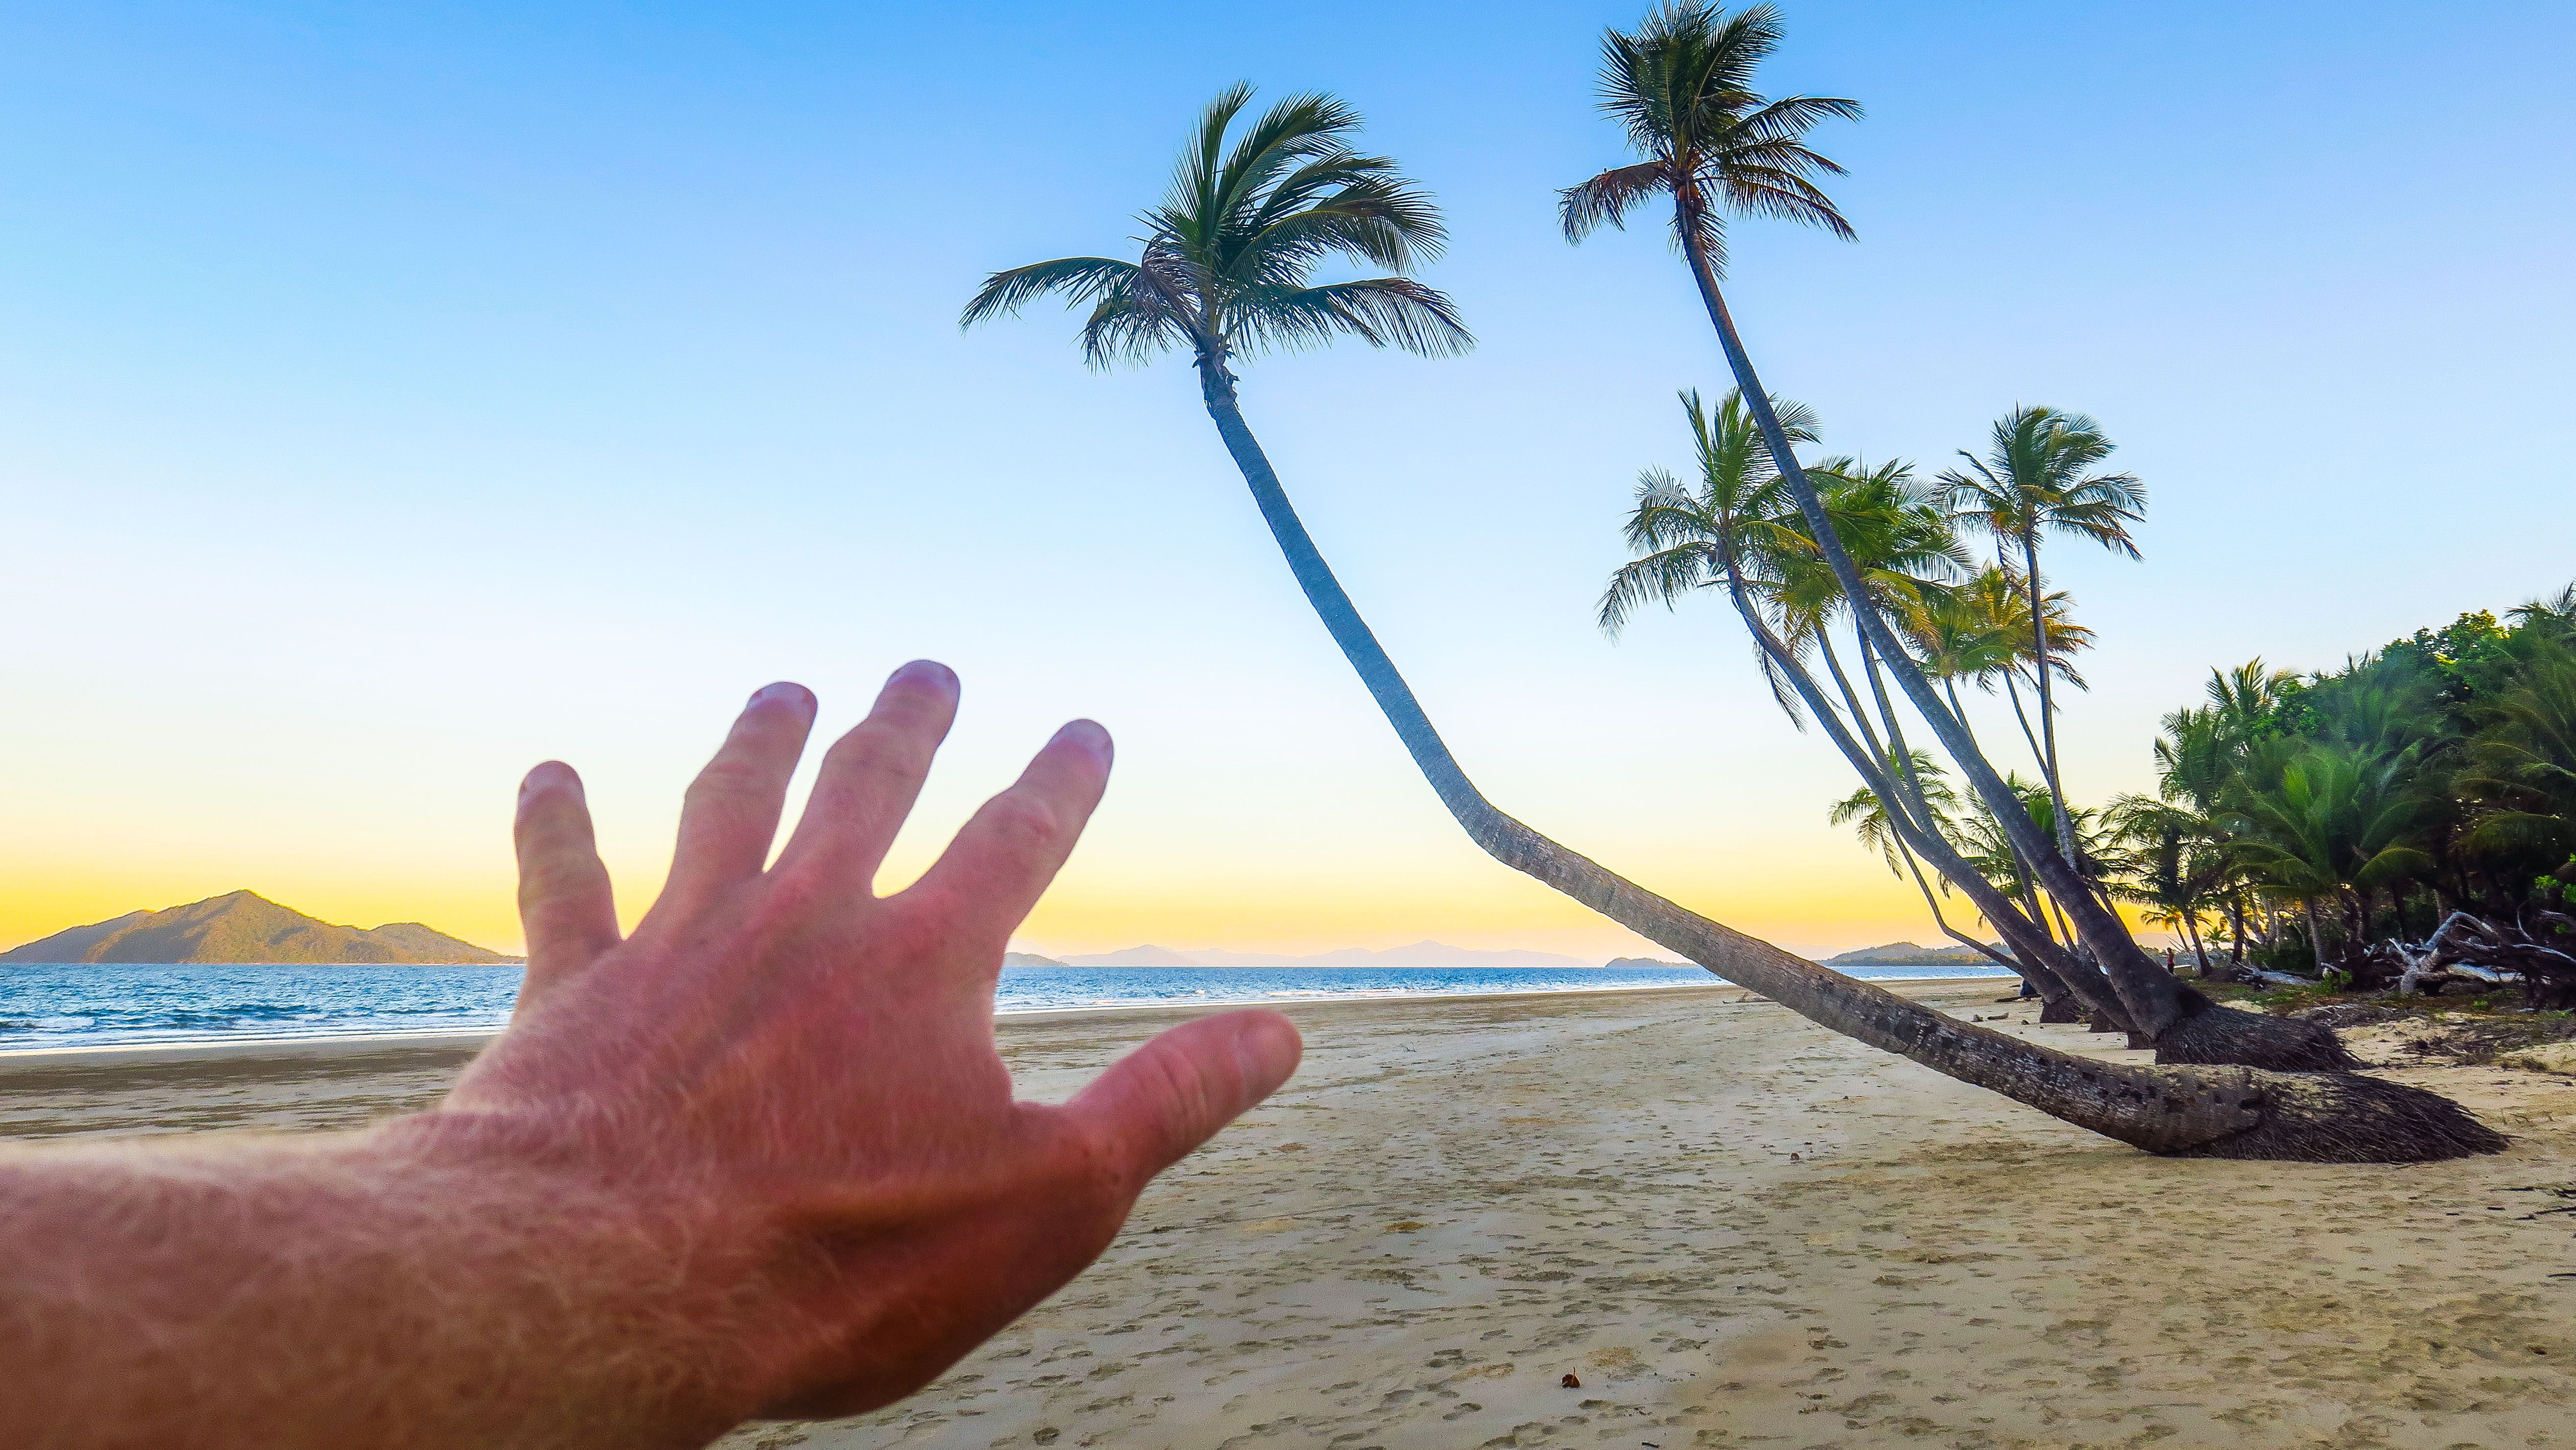 The Hand in Mission Beach